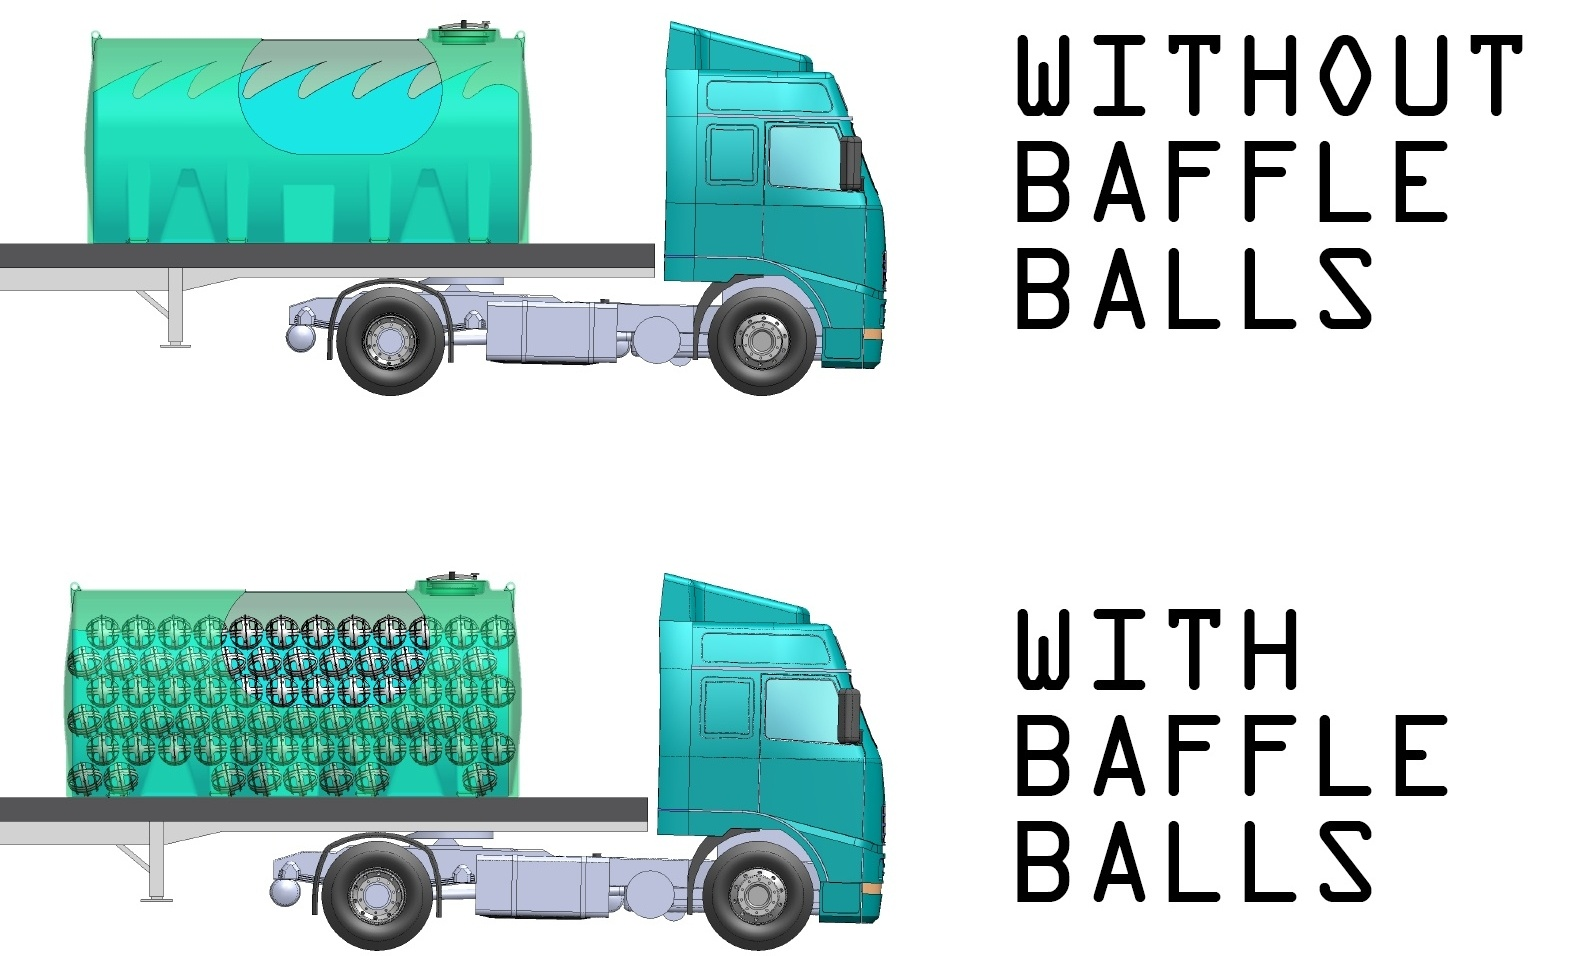 Baffle-Ball-Diagram.jpg